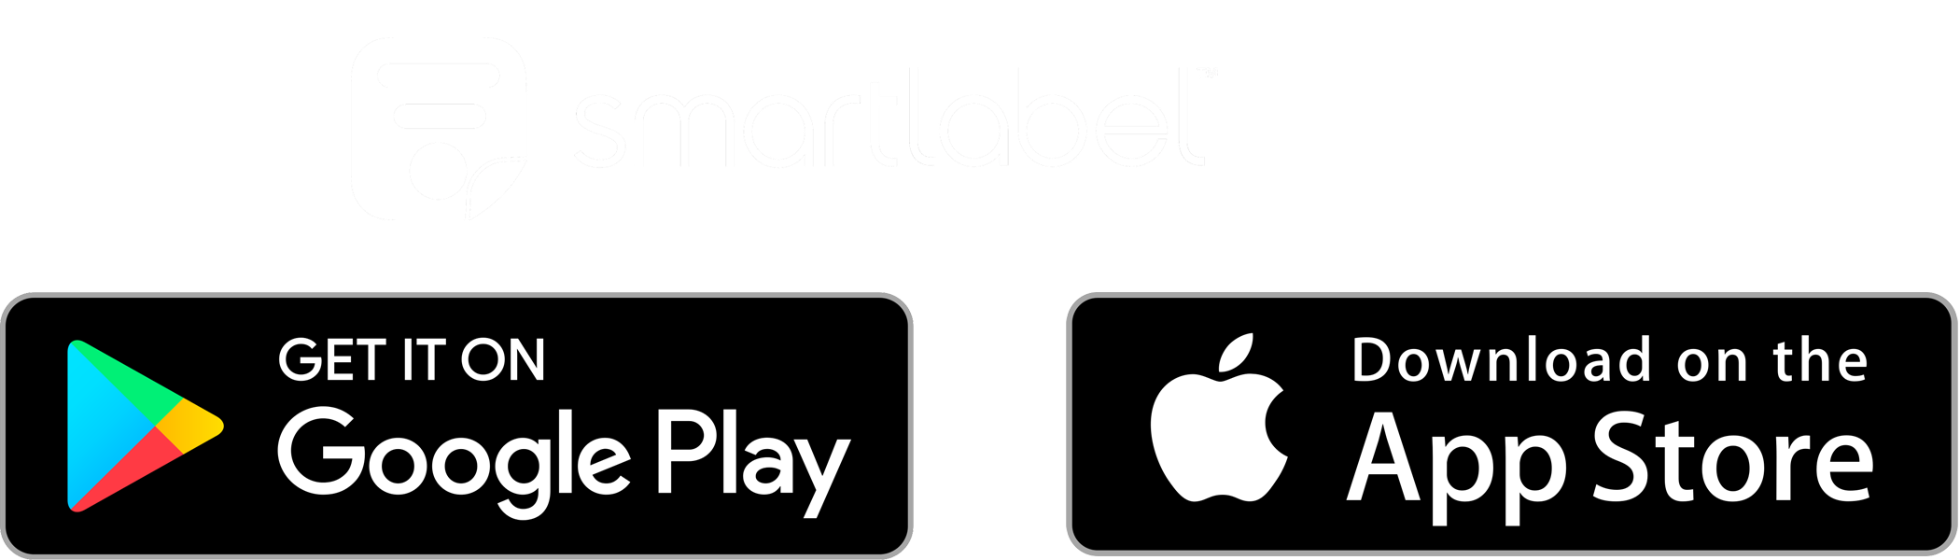 smart label app download